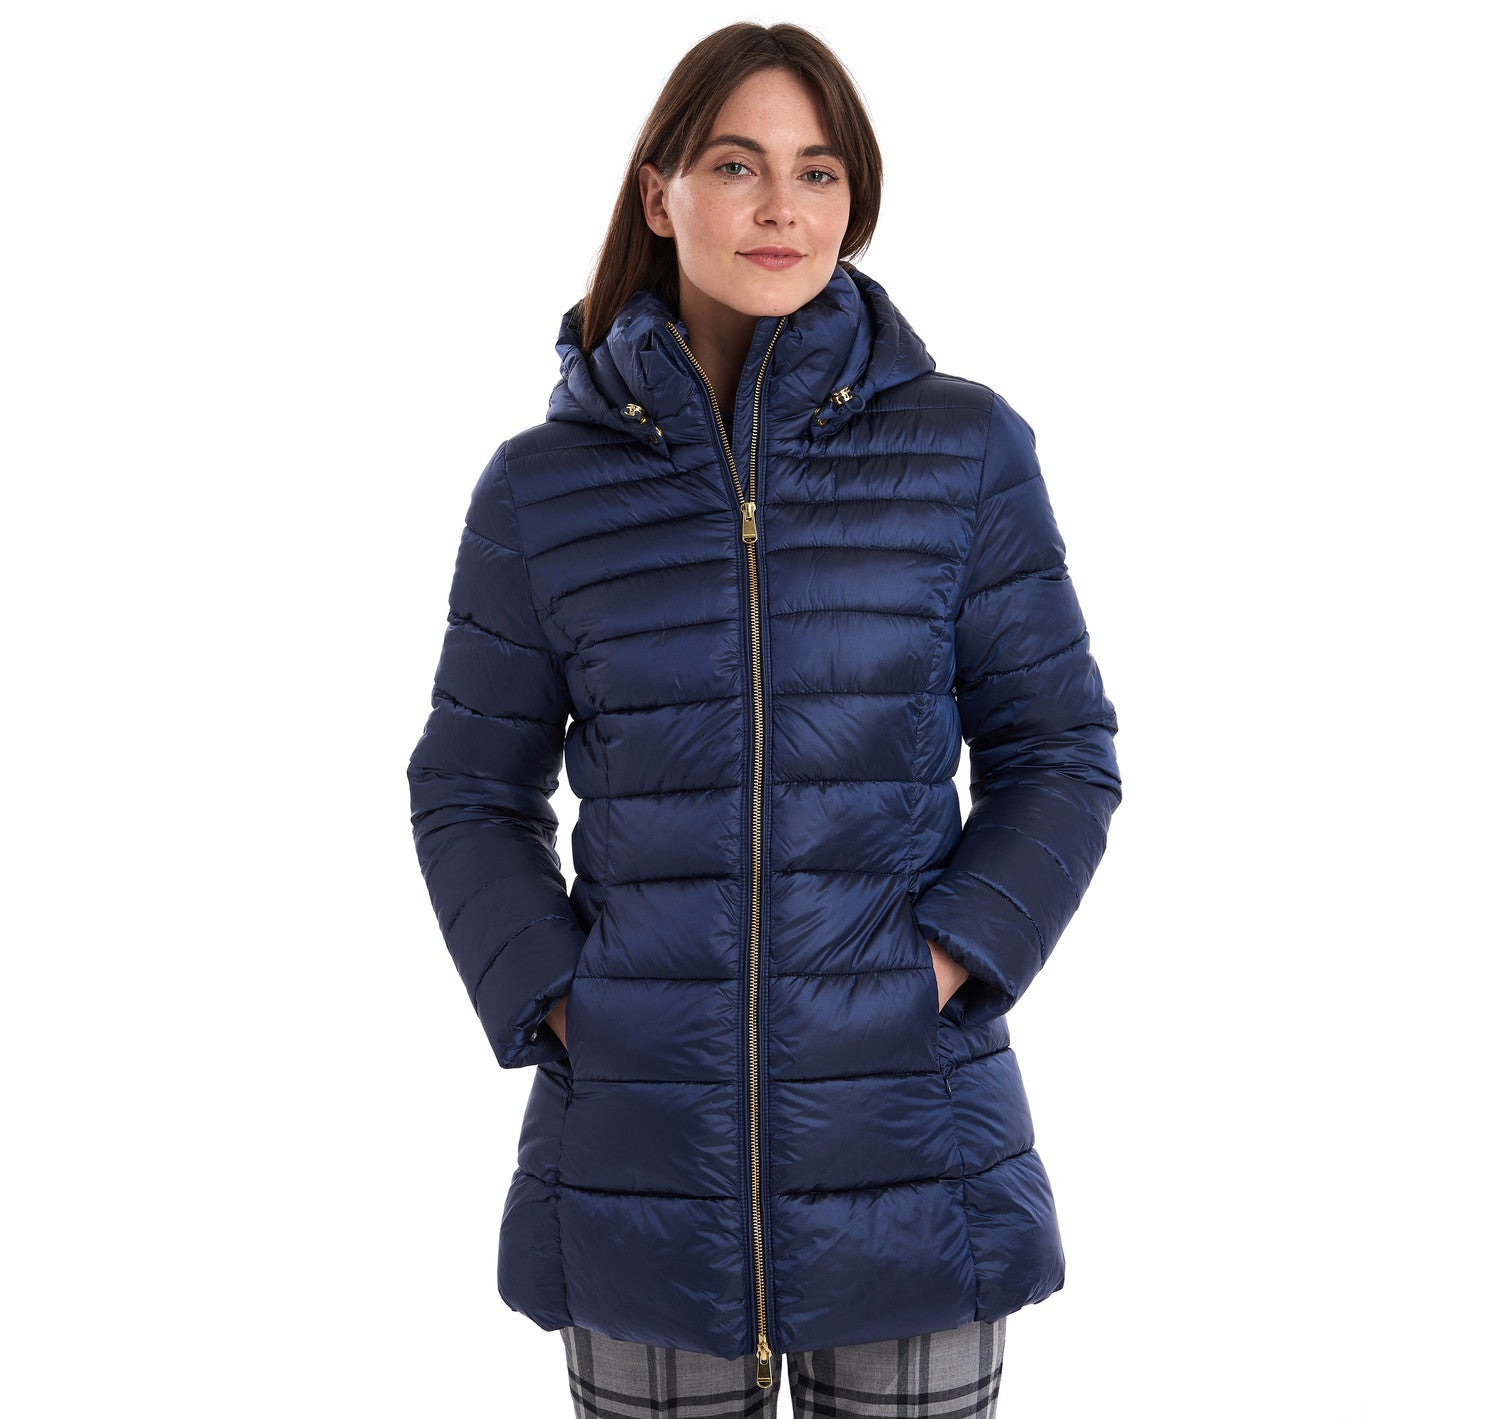 Barbour Blair Quilted Jacket for Ladies in Royal Navy